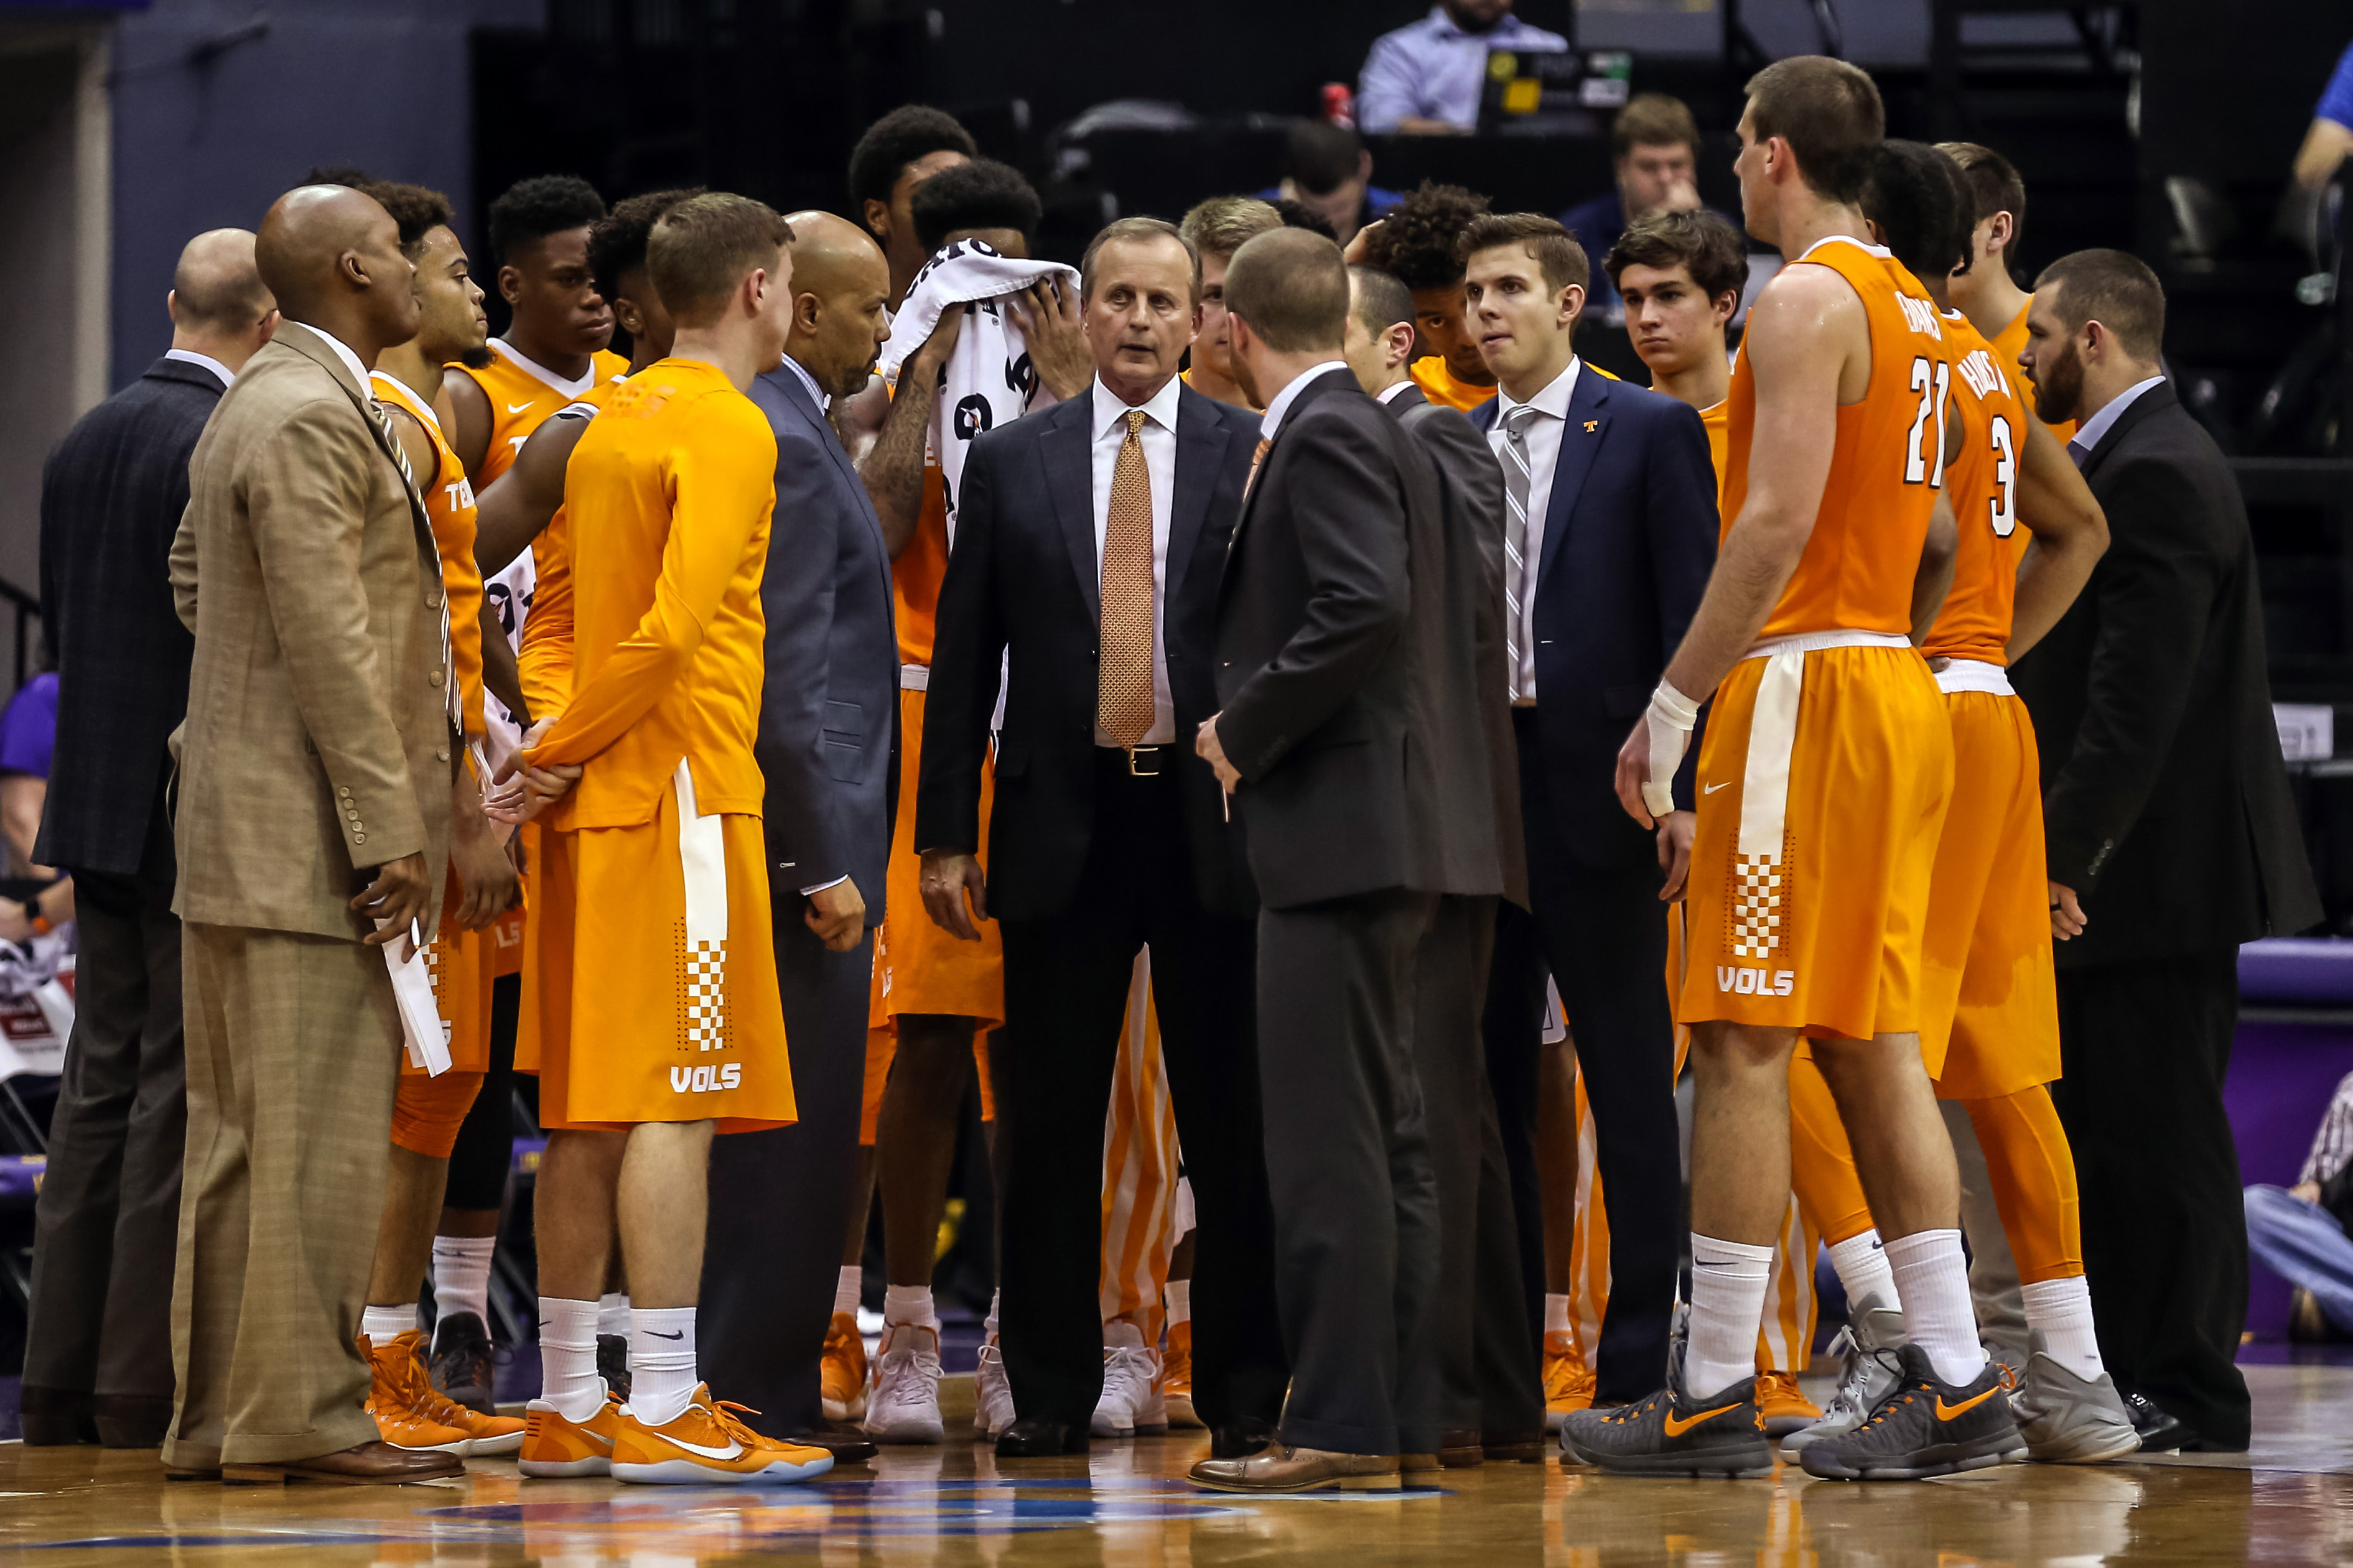 9910618-ncaa-basketball-tennessee-at-louisiana-state